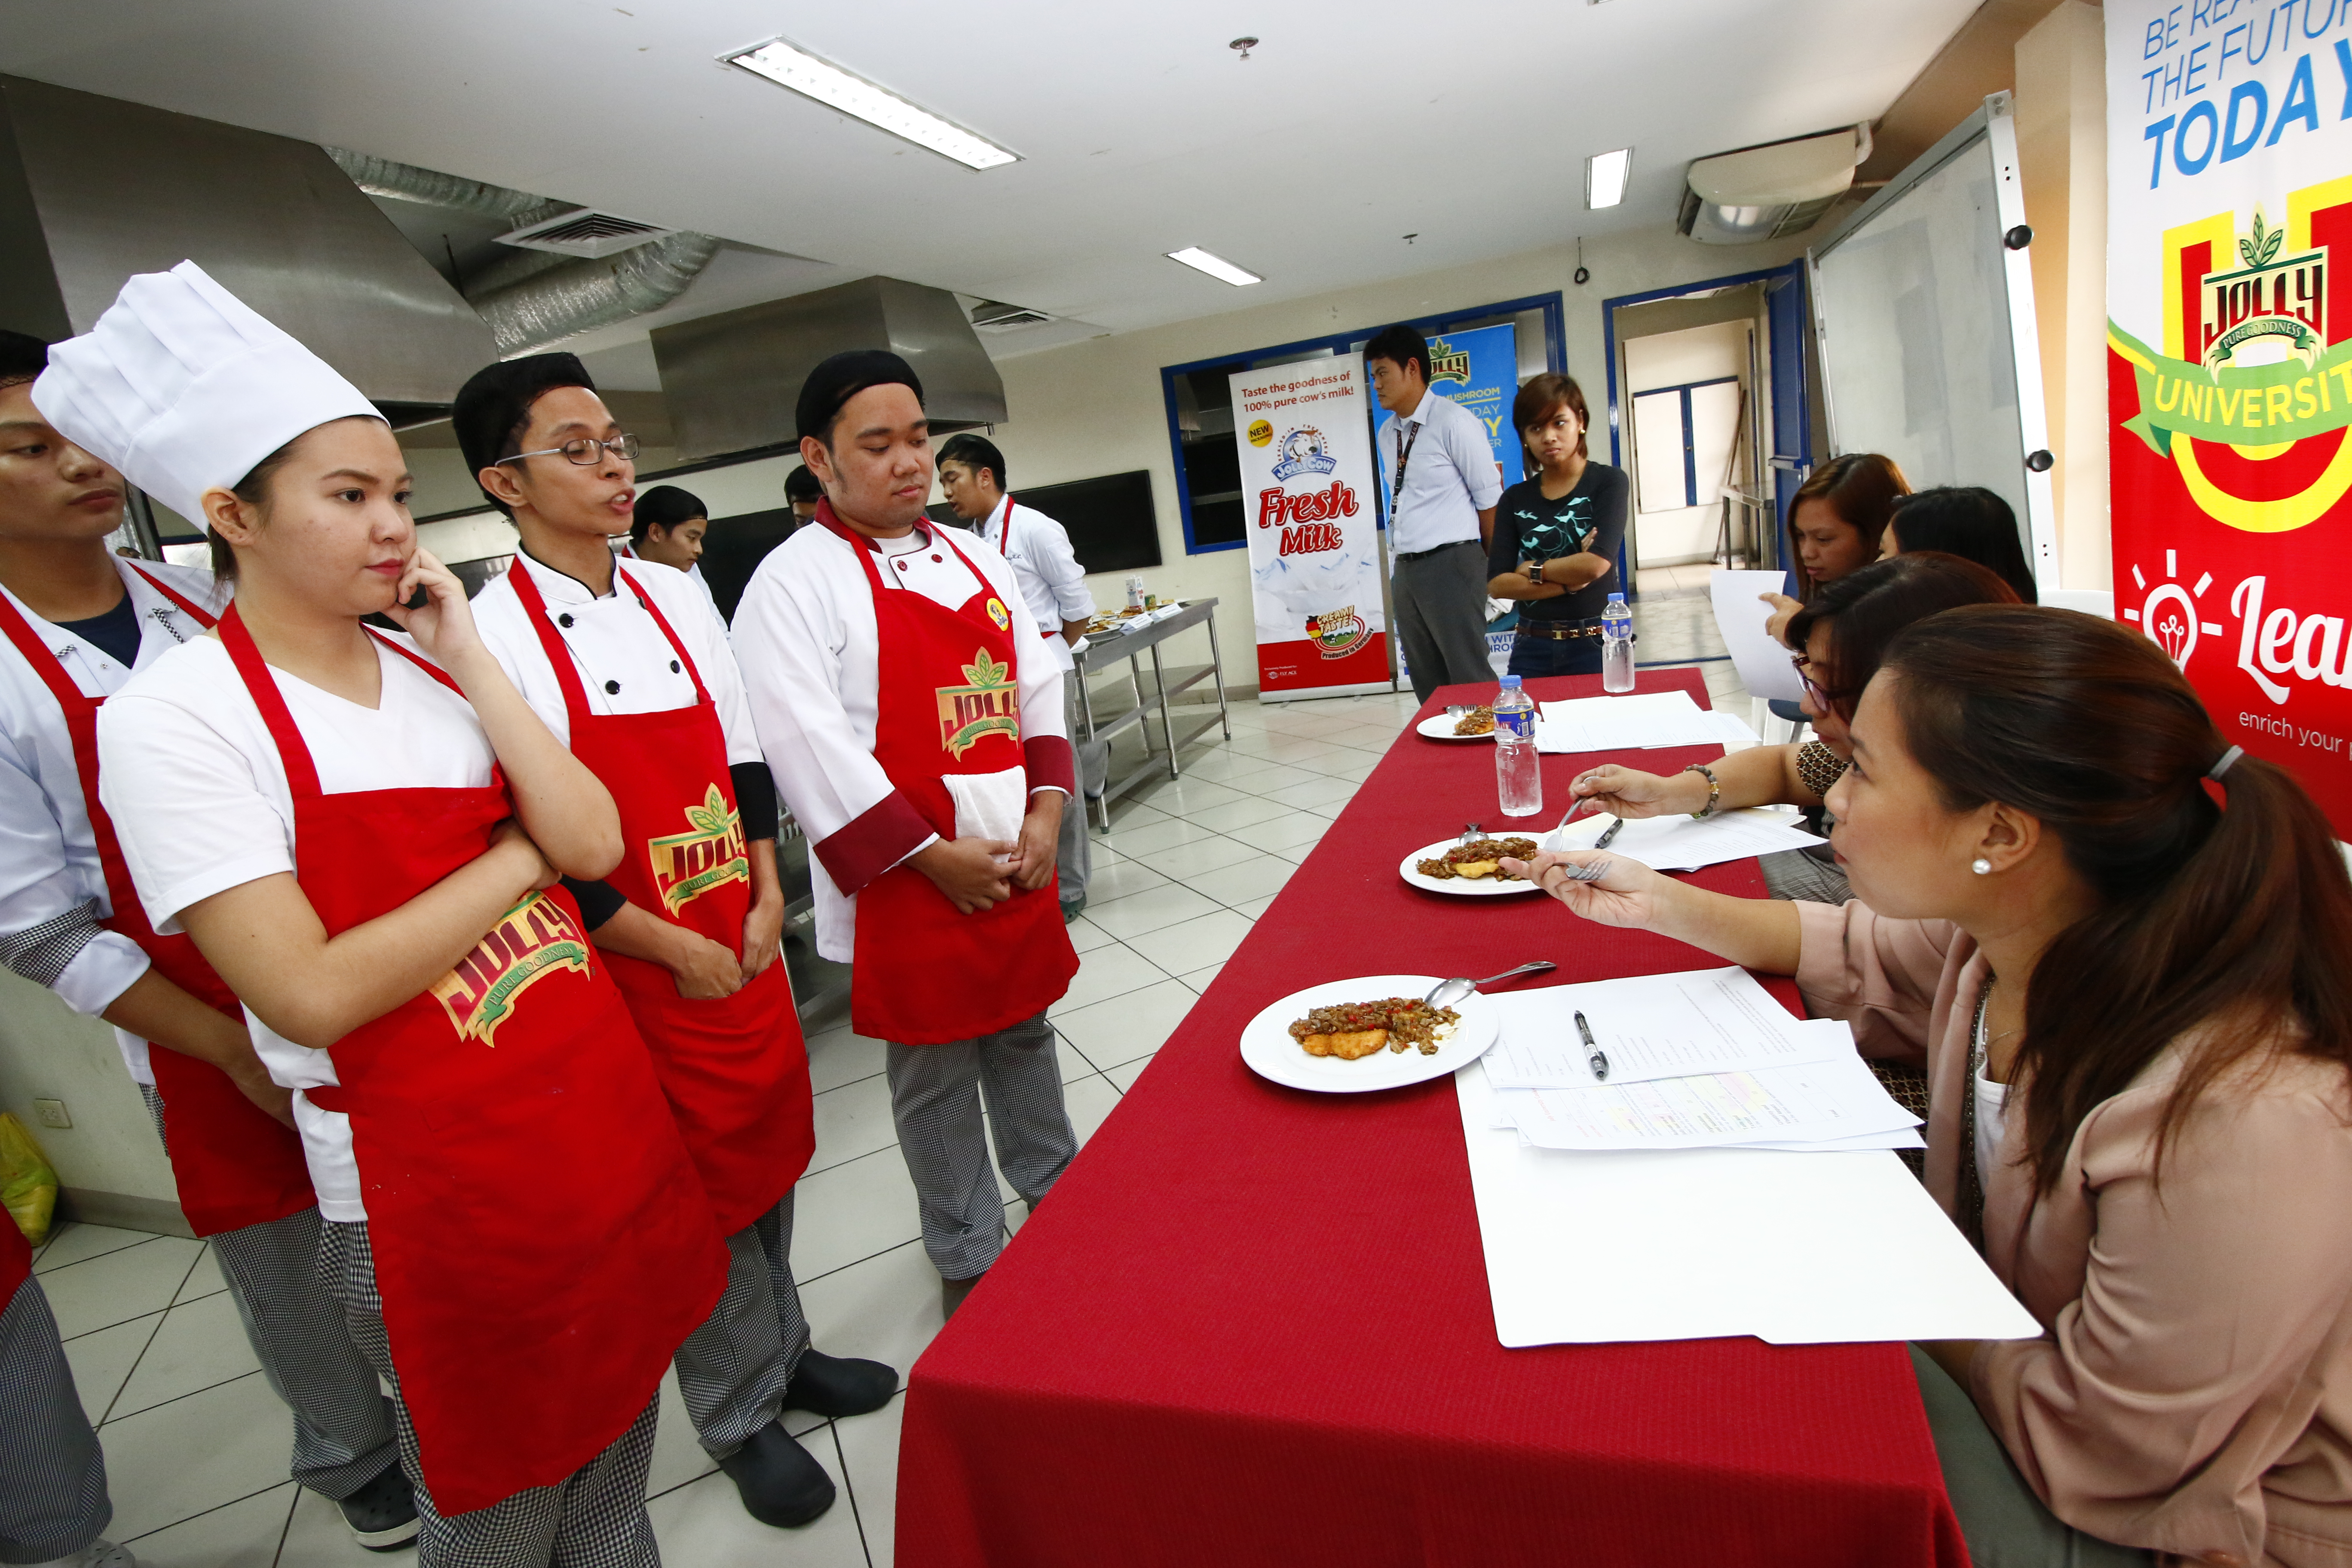 Jolly University gives culinary students the chance to shine in the food industry